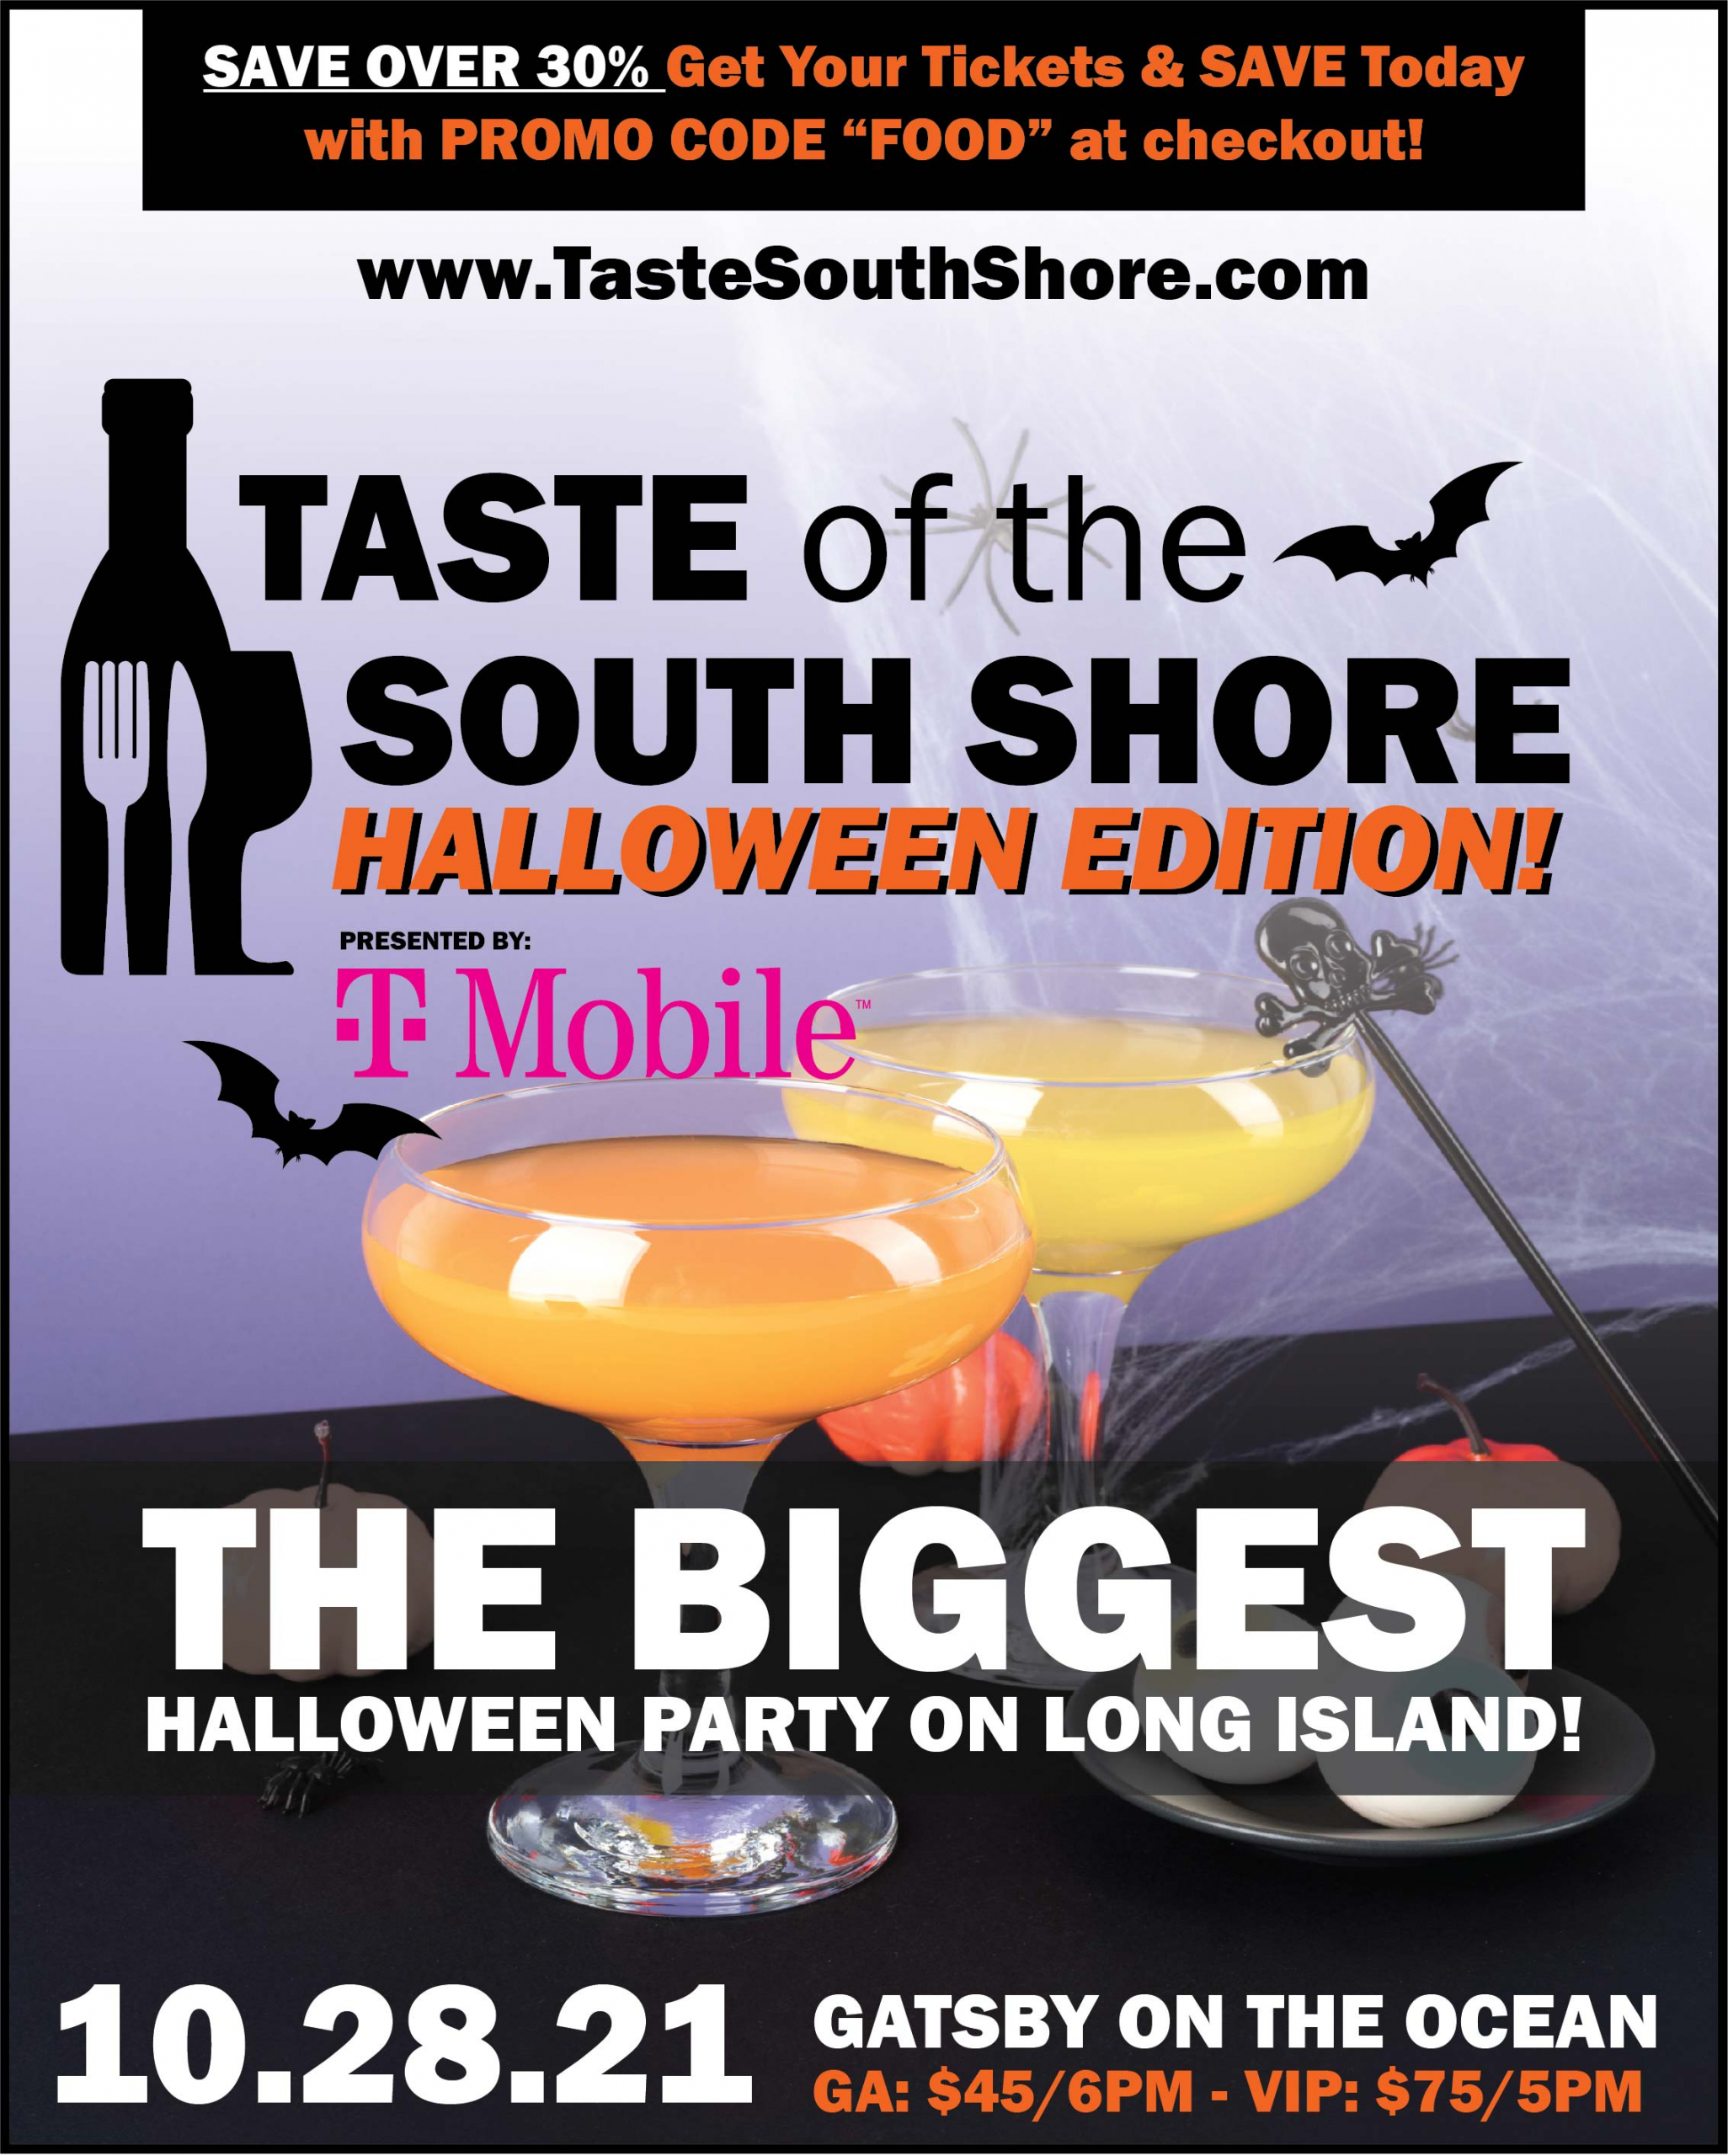 Taste of the South Shore